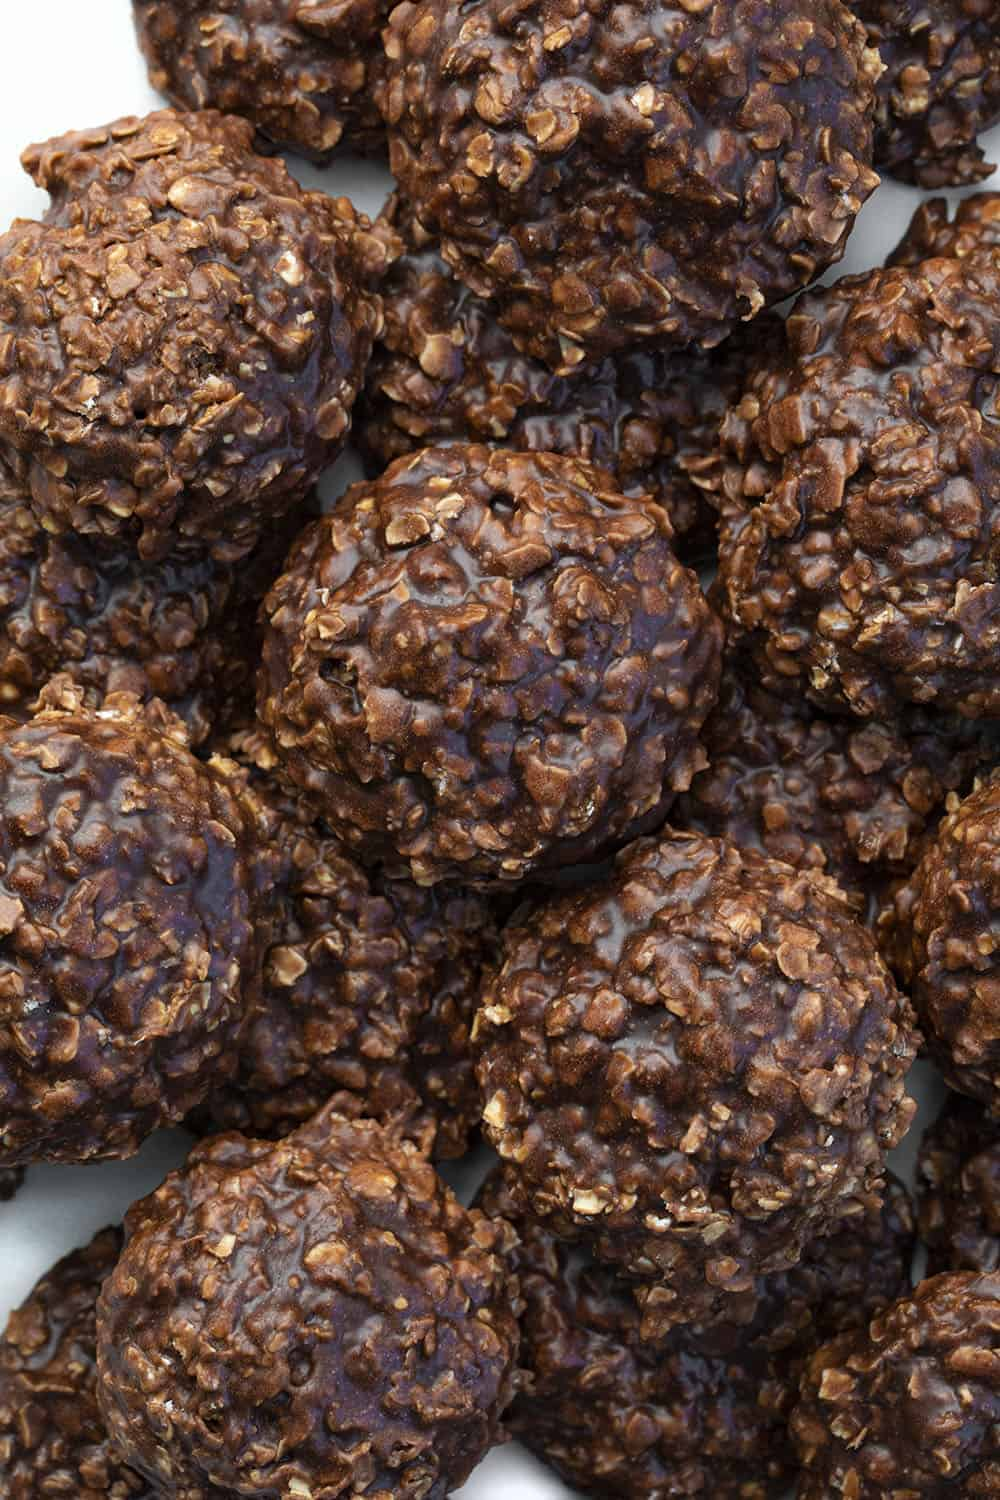 No Bake Chocolate Peanut Butter Cookies from Overhead